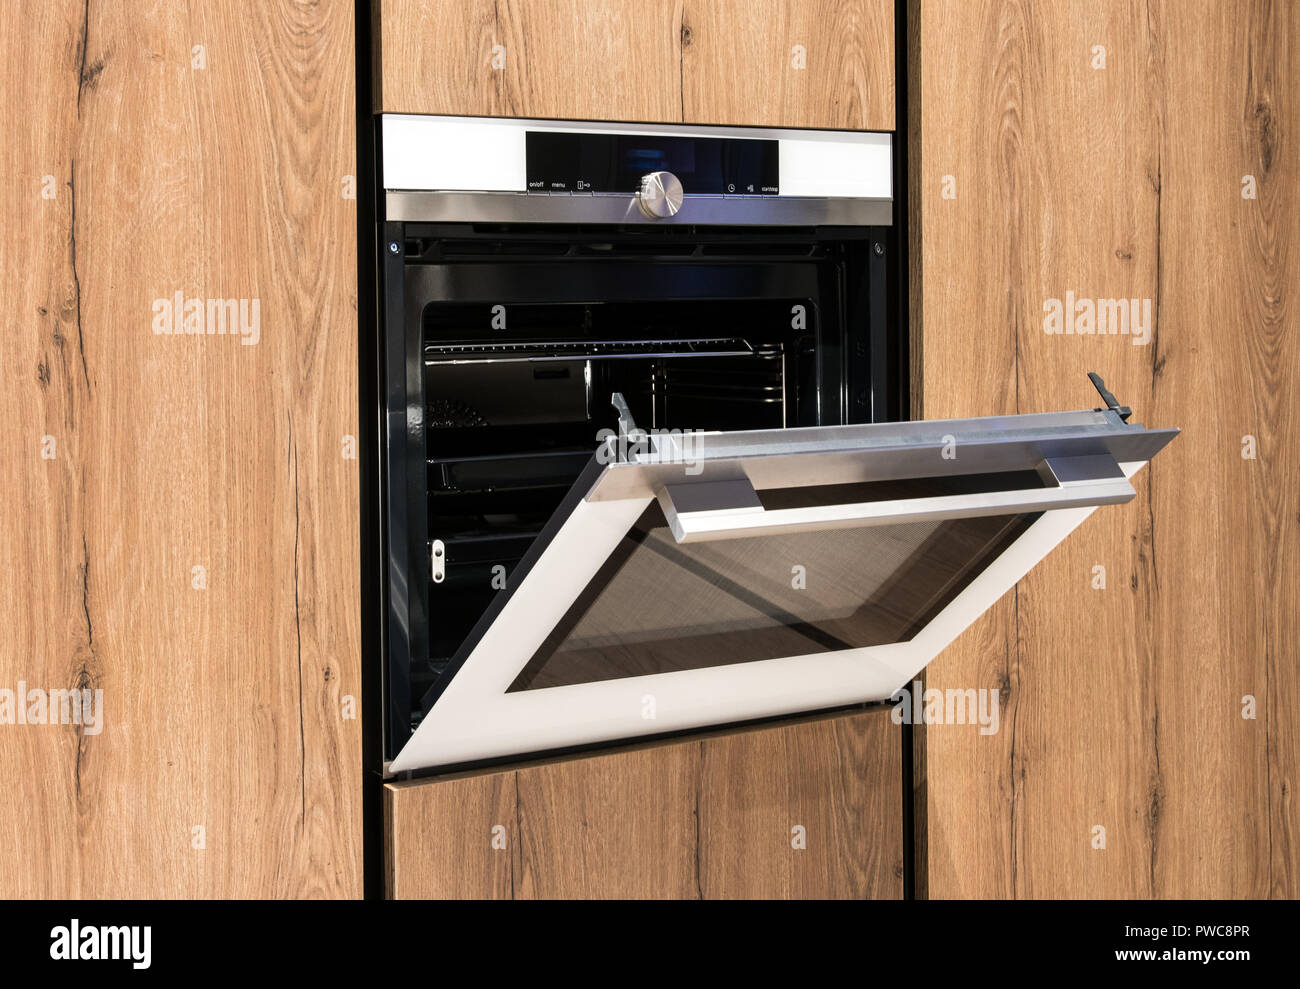 Built in oven in wooden fitted kitchen cabinets with the door open revealing the empty interior in a close up view - Stock Image